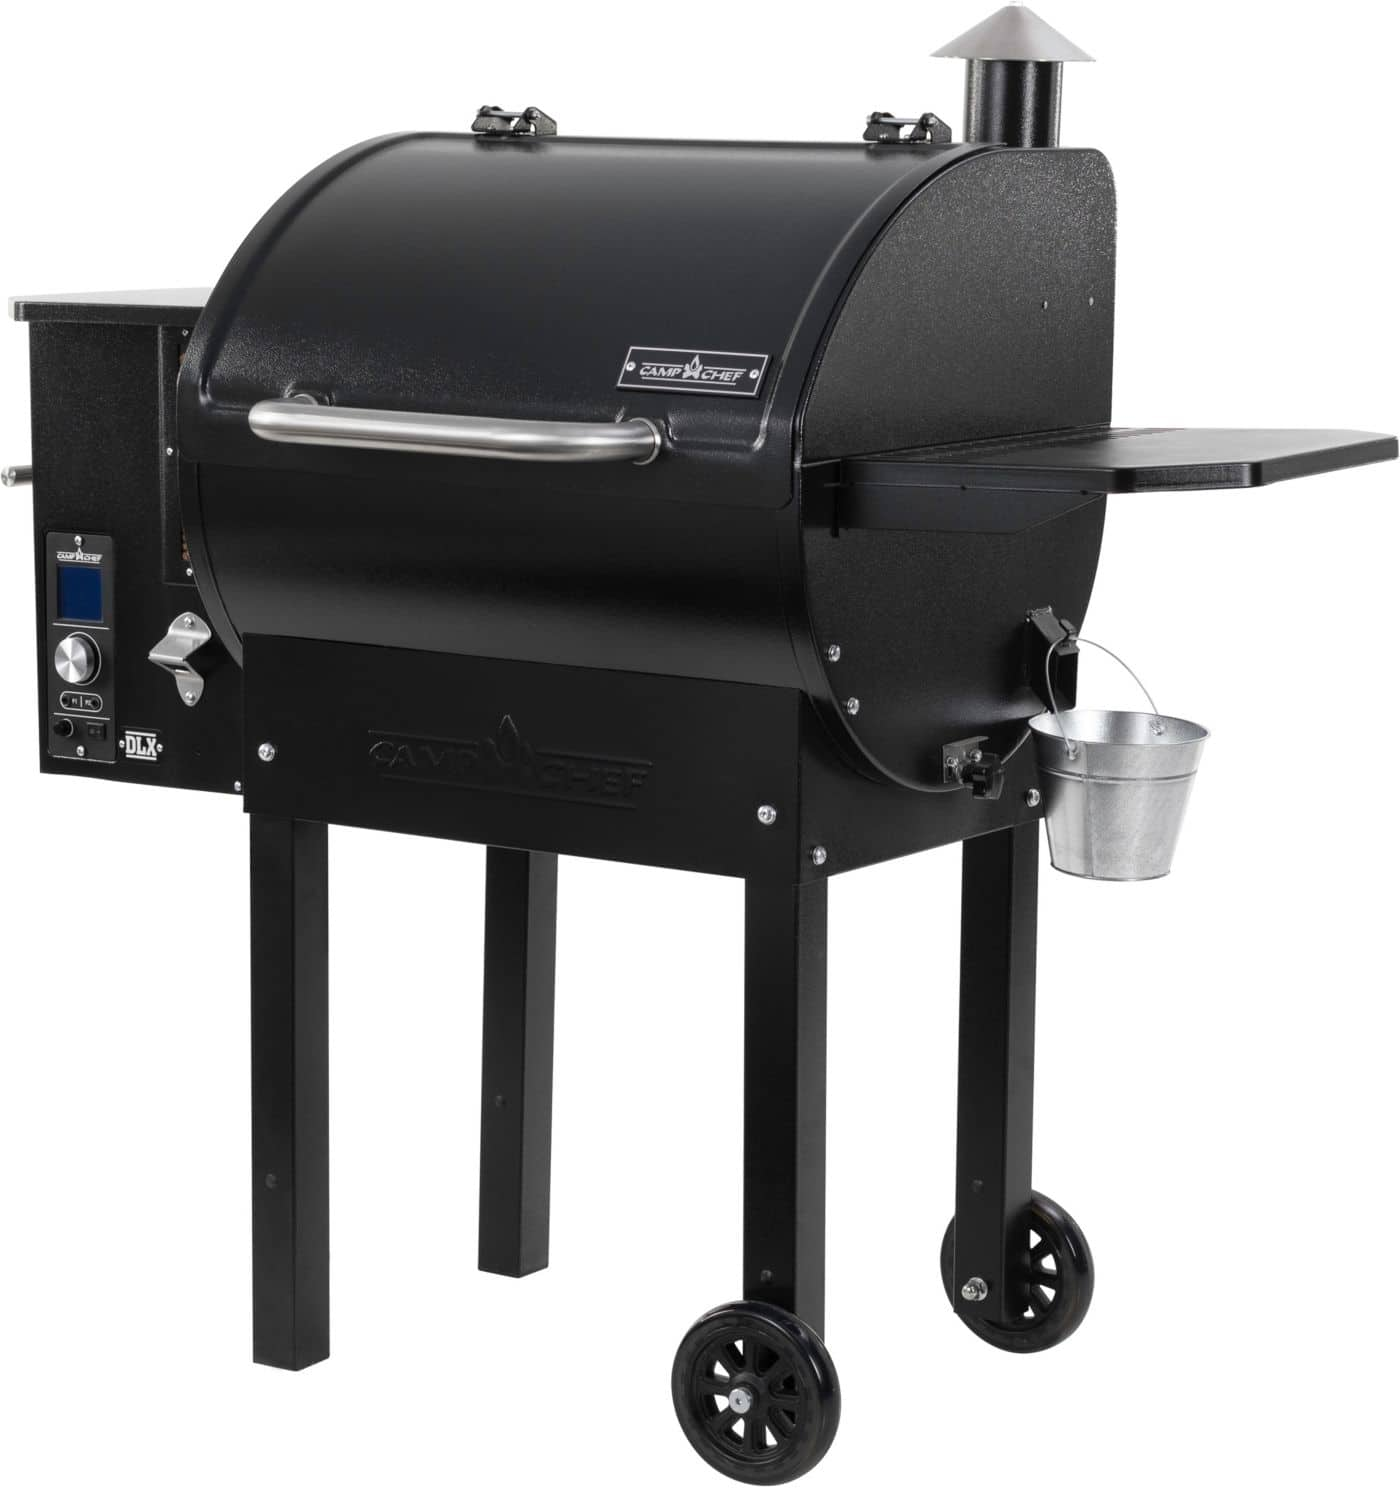 Camp Chef SmokePro Deluxe Pellet Grill and Smoker $399.99 ($100 off) + More at Dickssportinggoods.com